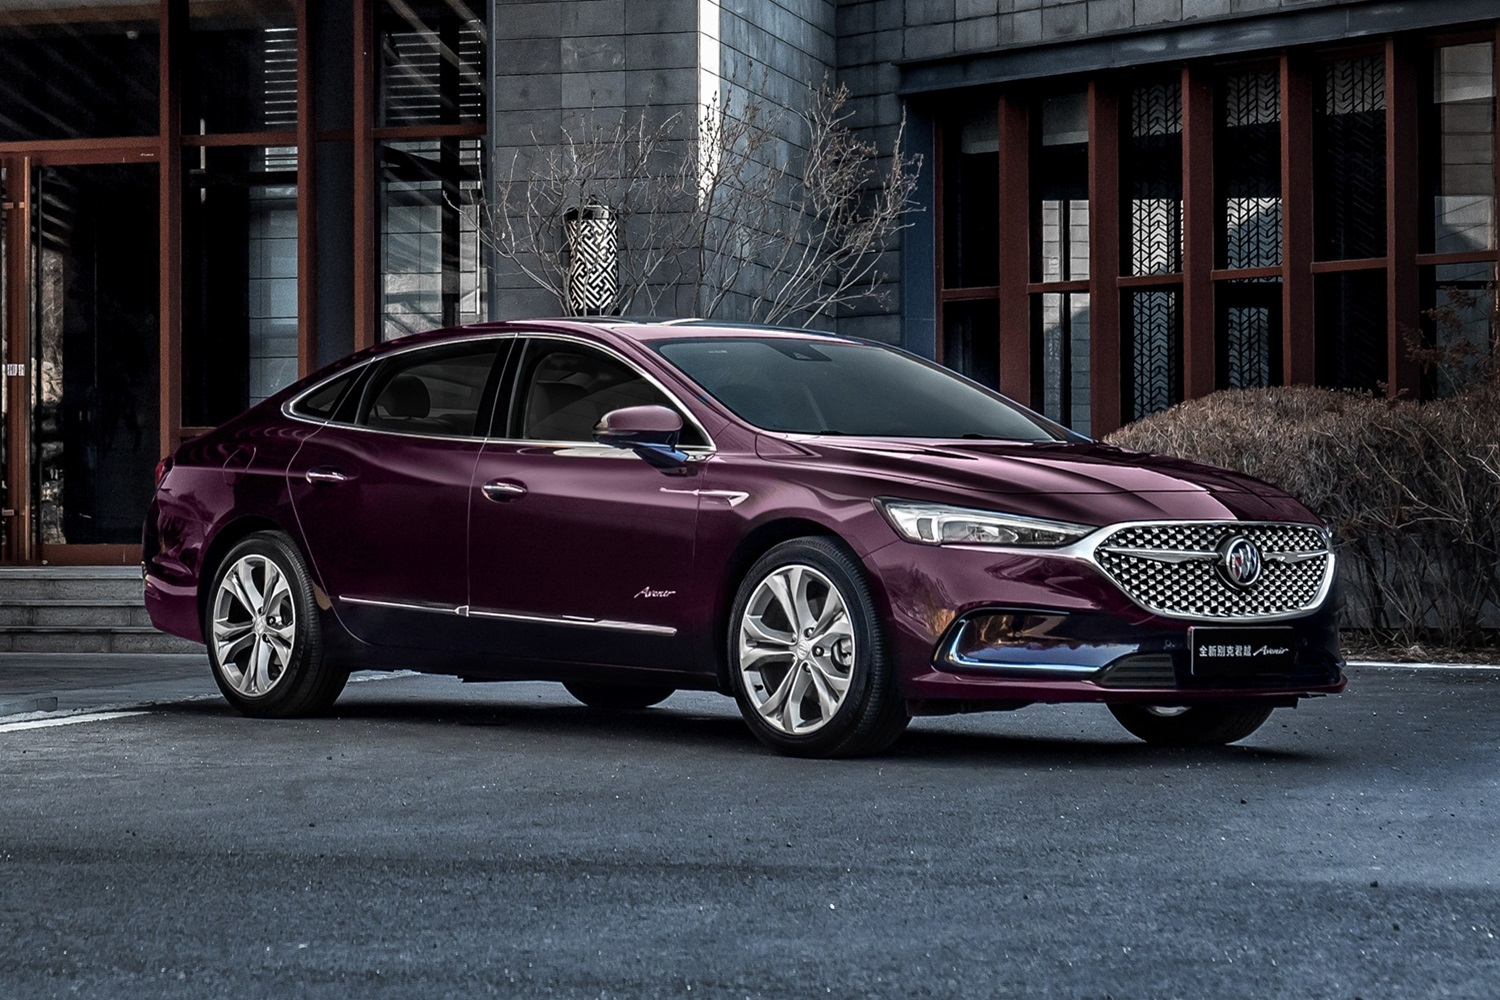 2021 Buick Lacrosse Gets More Refined Than Ever | Gm Authority 2021 Buick Lucerne Transmission, Parts, Recalls